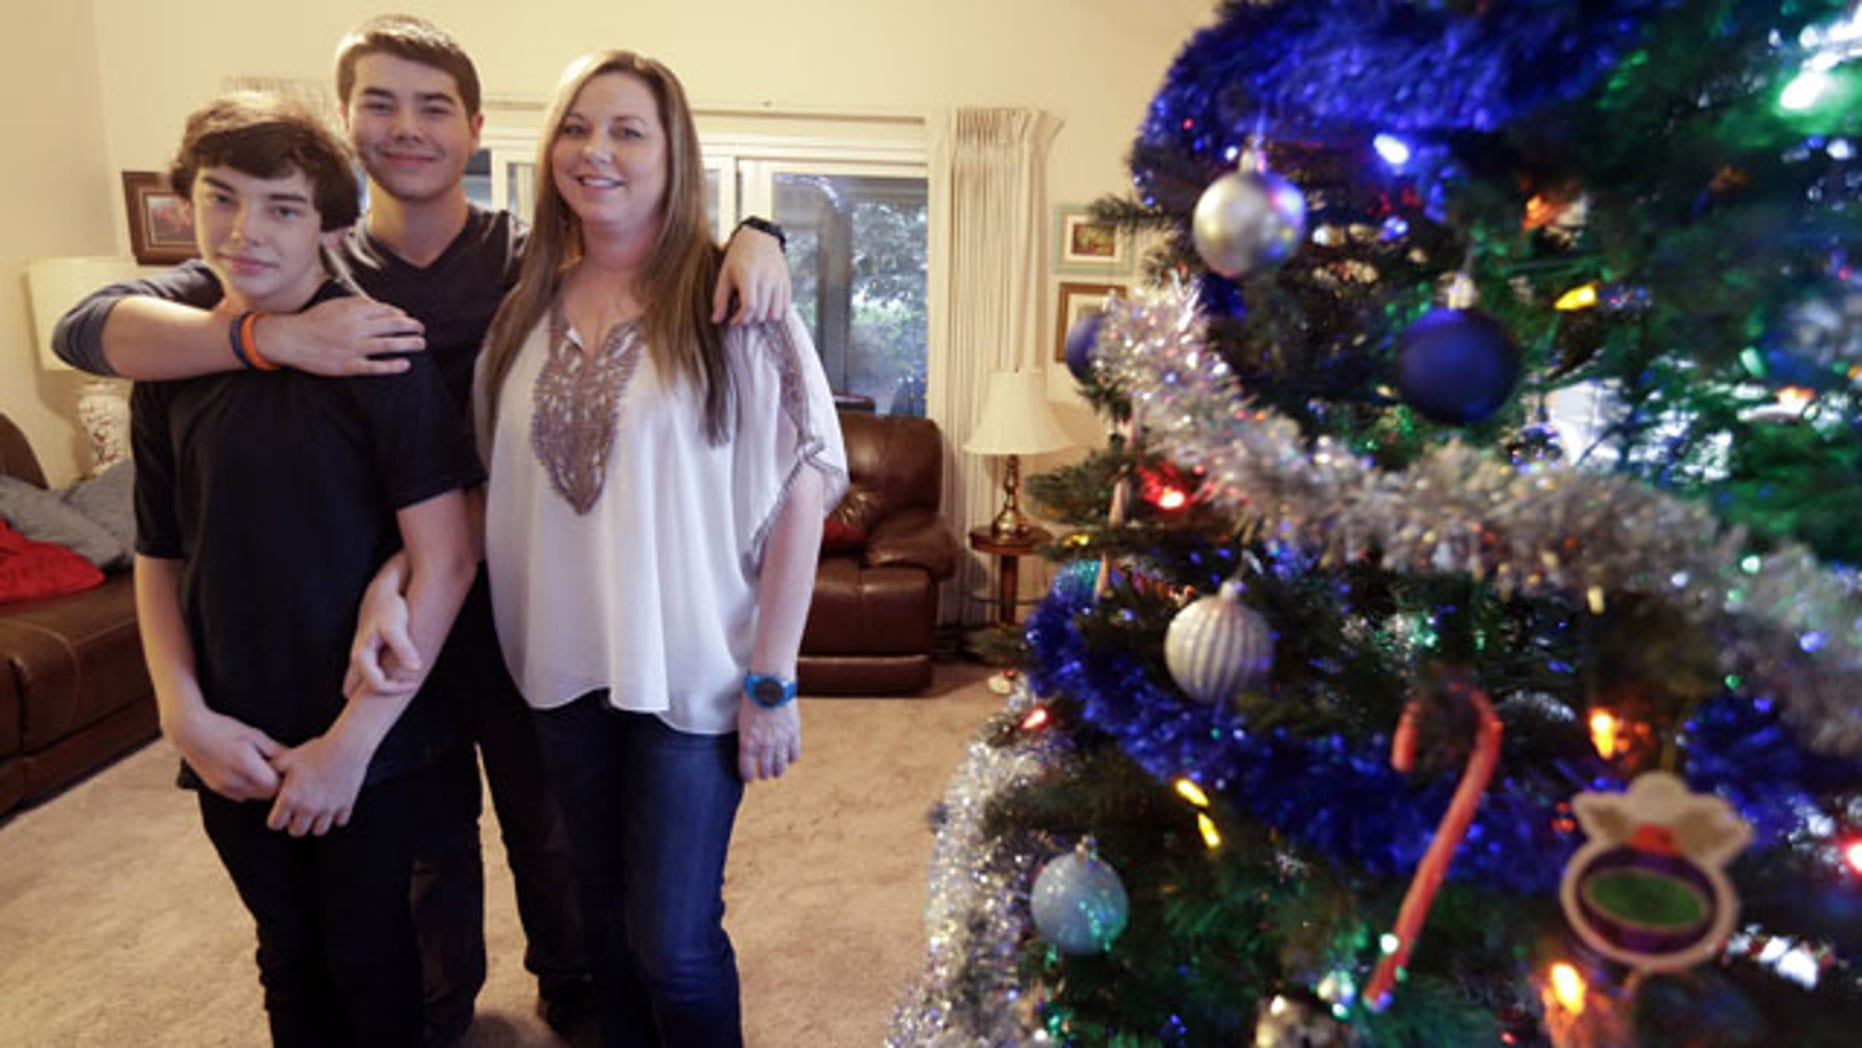 December 17, 2013: Matthew Kremis, center, poses for a picture with his brother Trevin Kremis, left, and their mother, Deanna Kremis, in their home in San Marcos, Calif. All three have received heart transplants, after suffering from an inherited heart condition. (AP Photo/Gregory Bull)